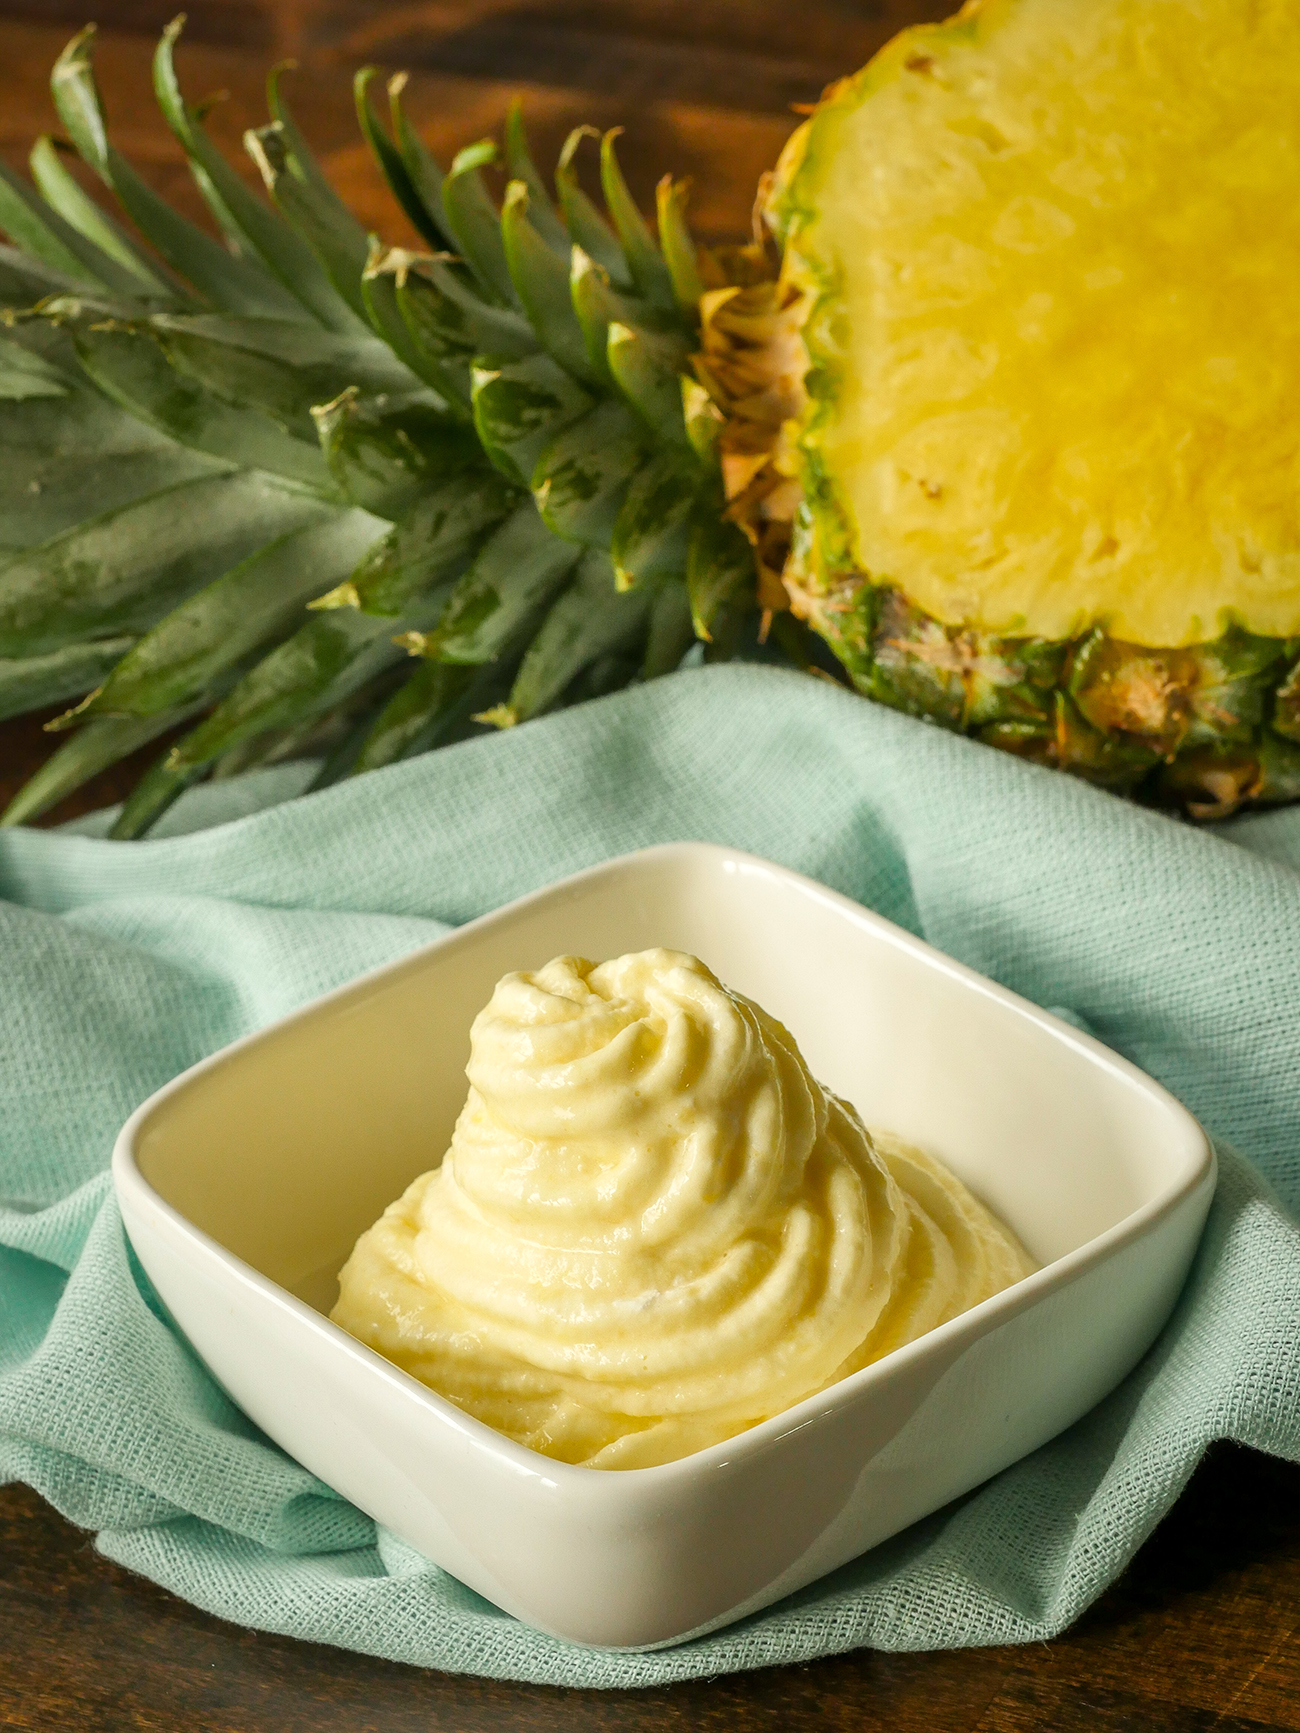 Dole Whip Vertical 2